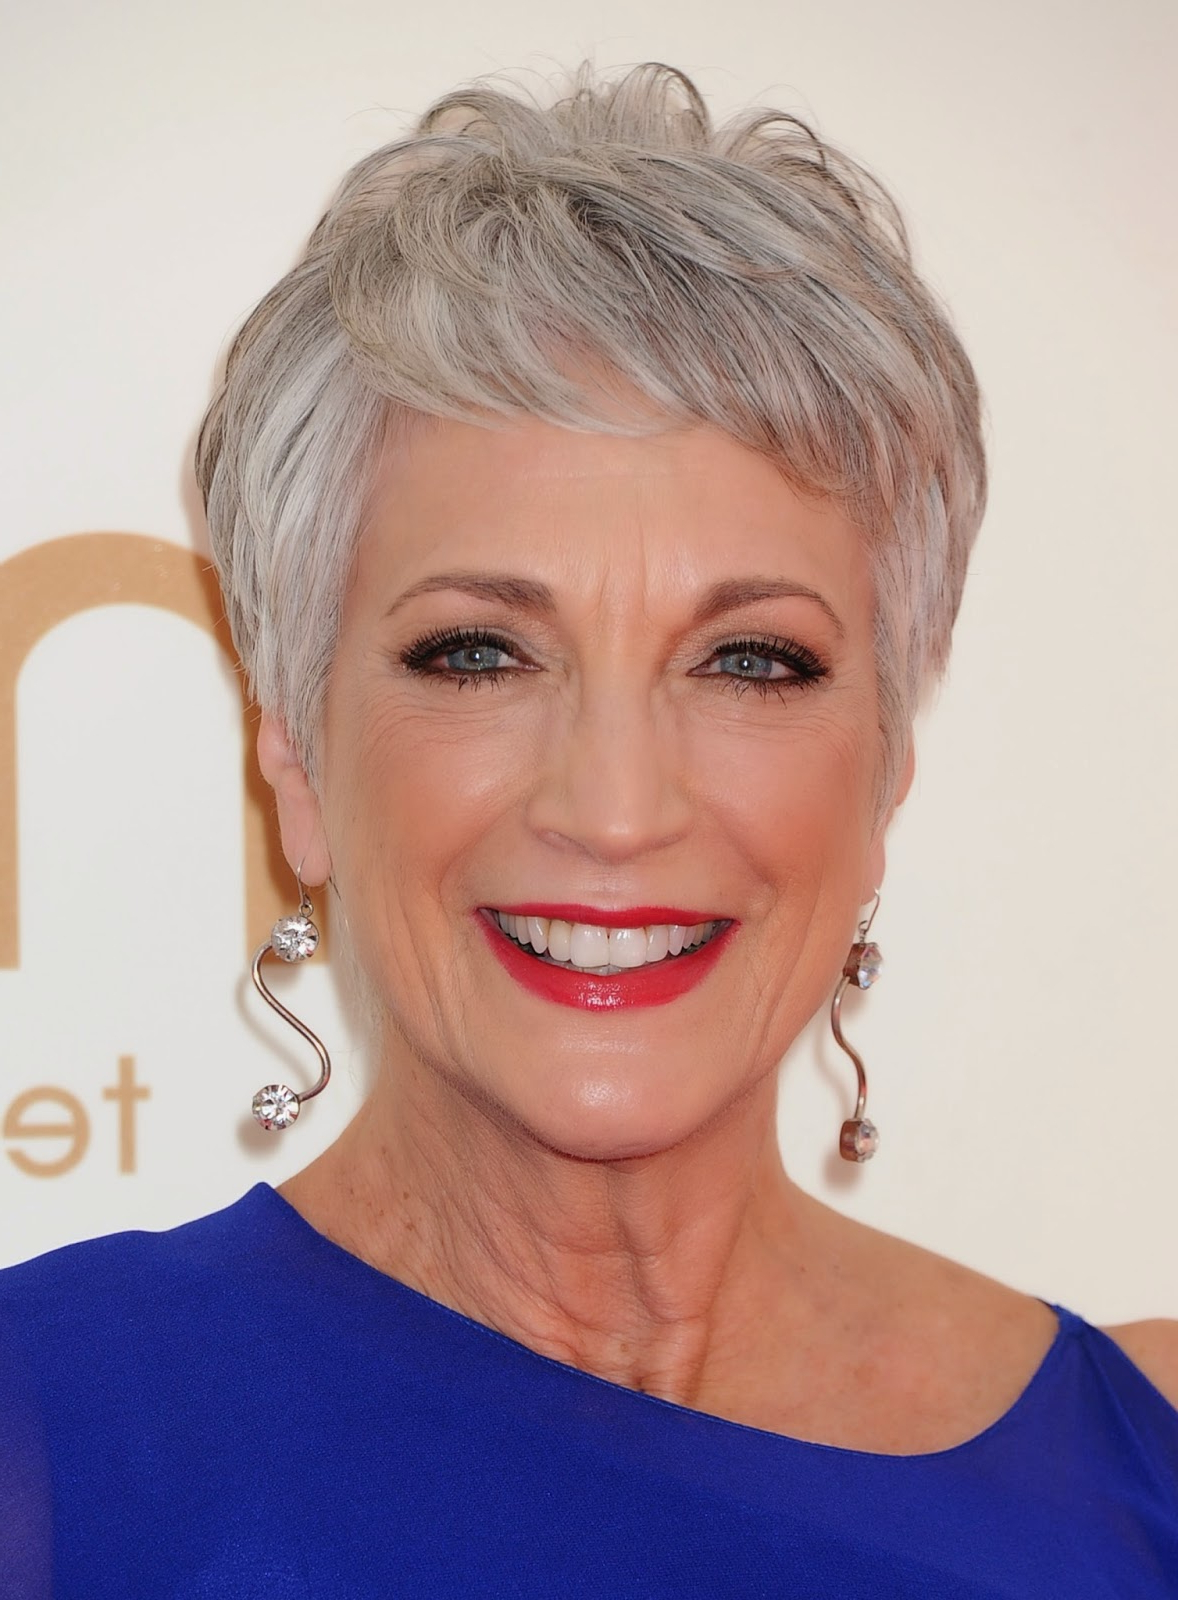 Over 50S Hairstyles For Short Hair - Hairstyle For Women & Man with regard to Short Hair For Over 50S